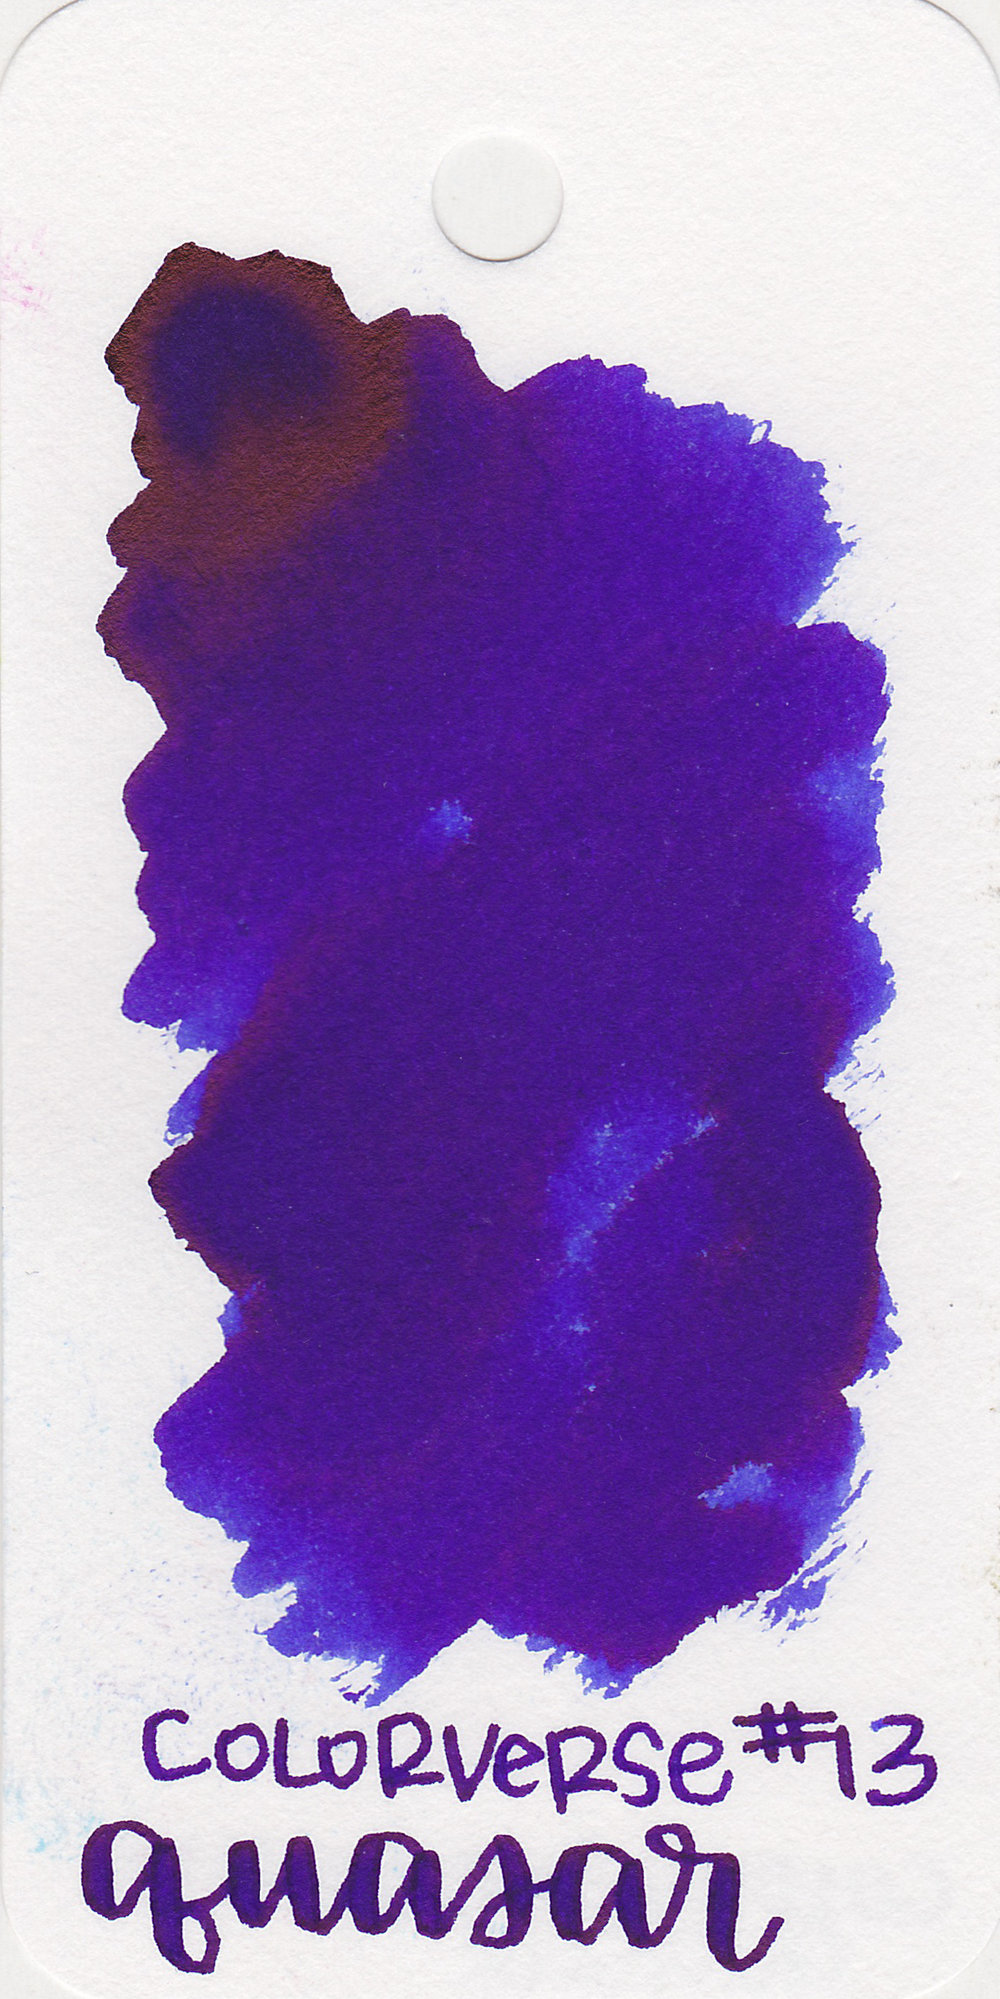 The color: - Quasar is a dark blue with a hint of purple in it.